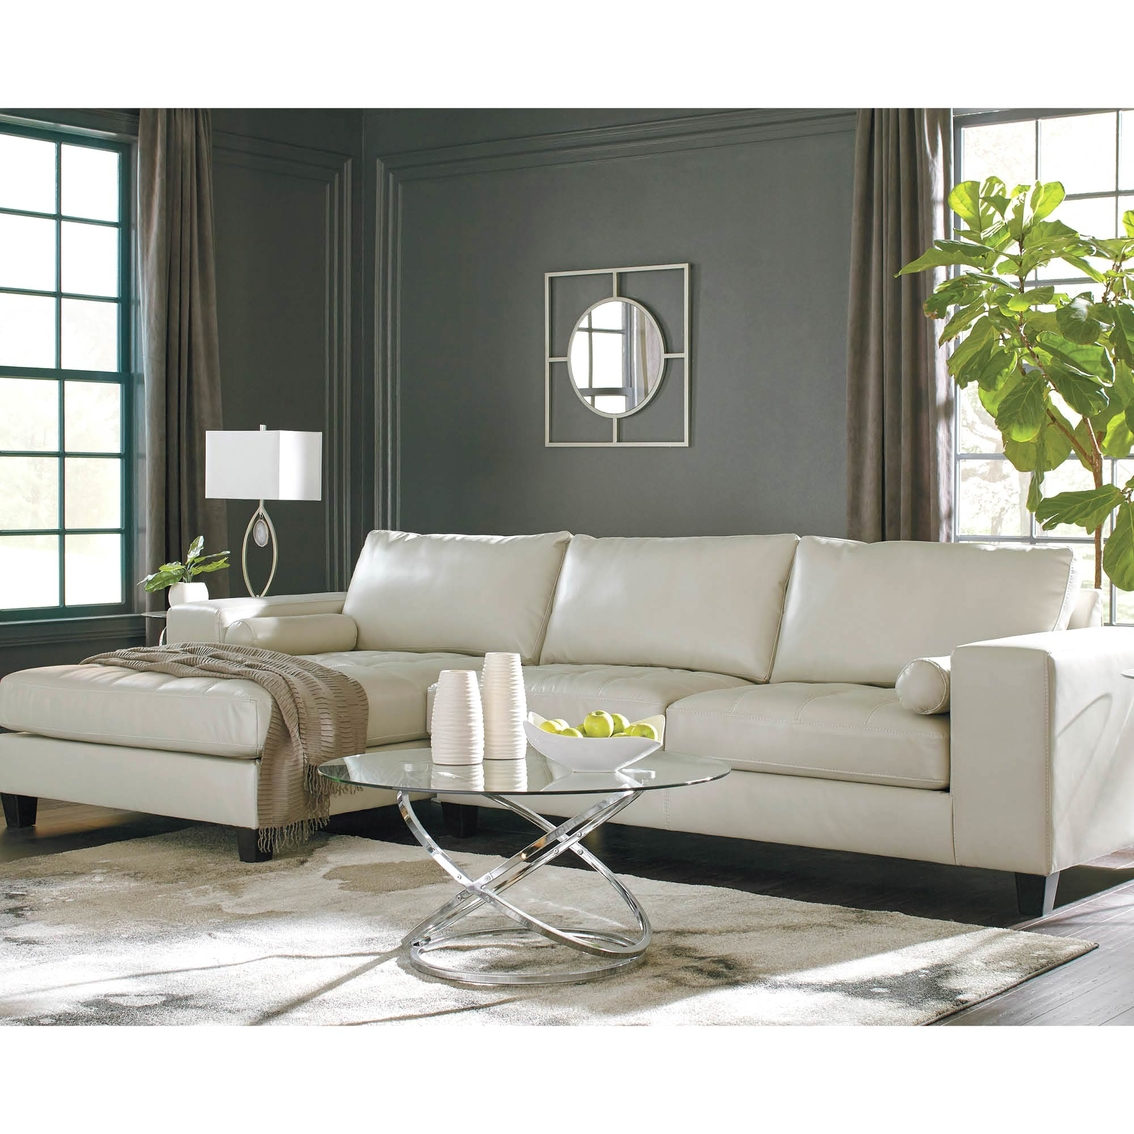 Nokomis 2 Piece Sectional With Chaise: Signature Design By Ashley Nokomis 2 Pc. Laf Corner Chaise